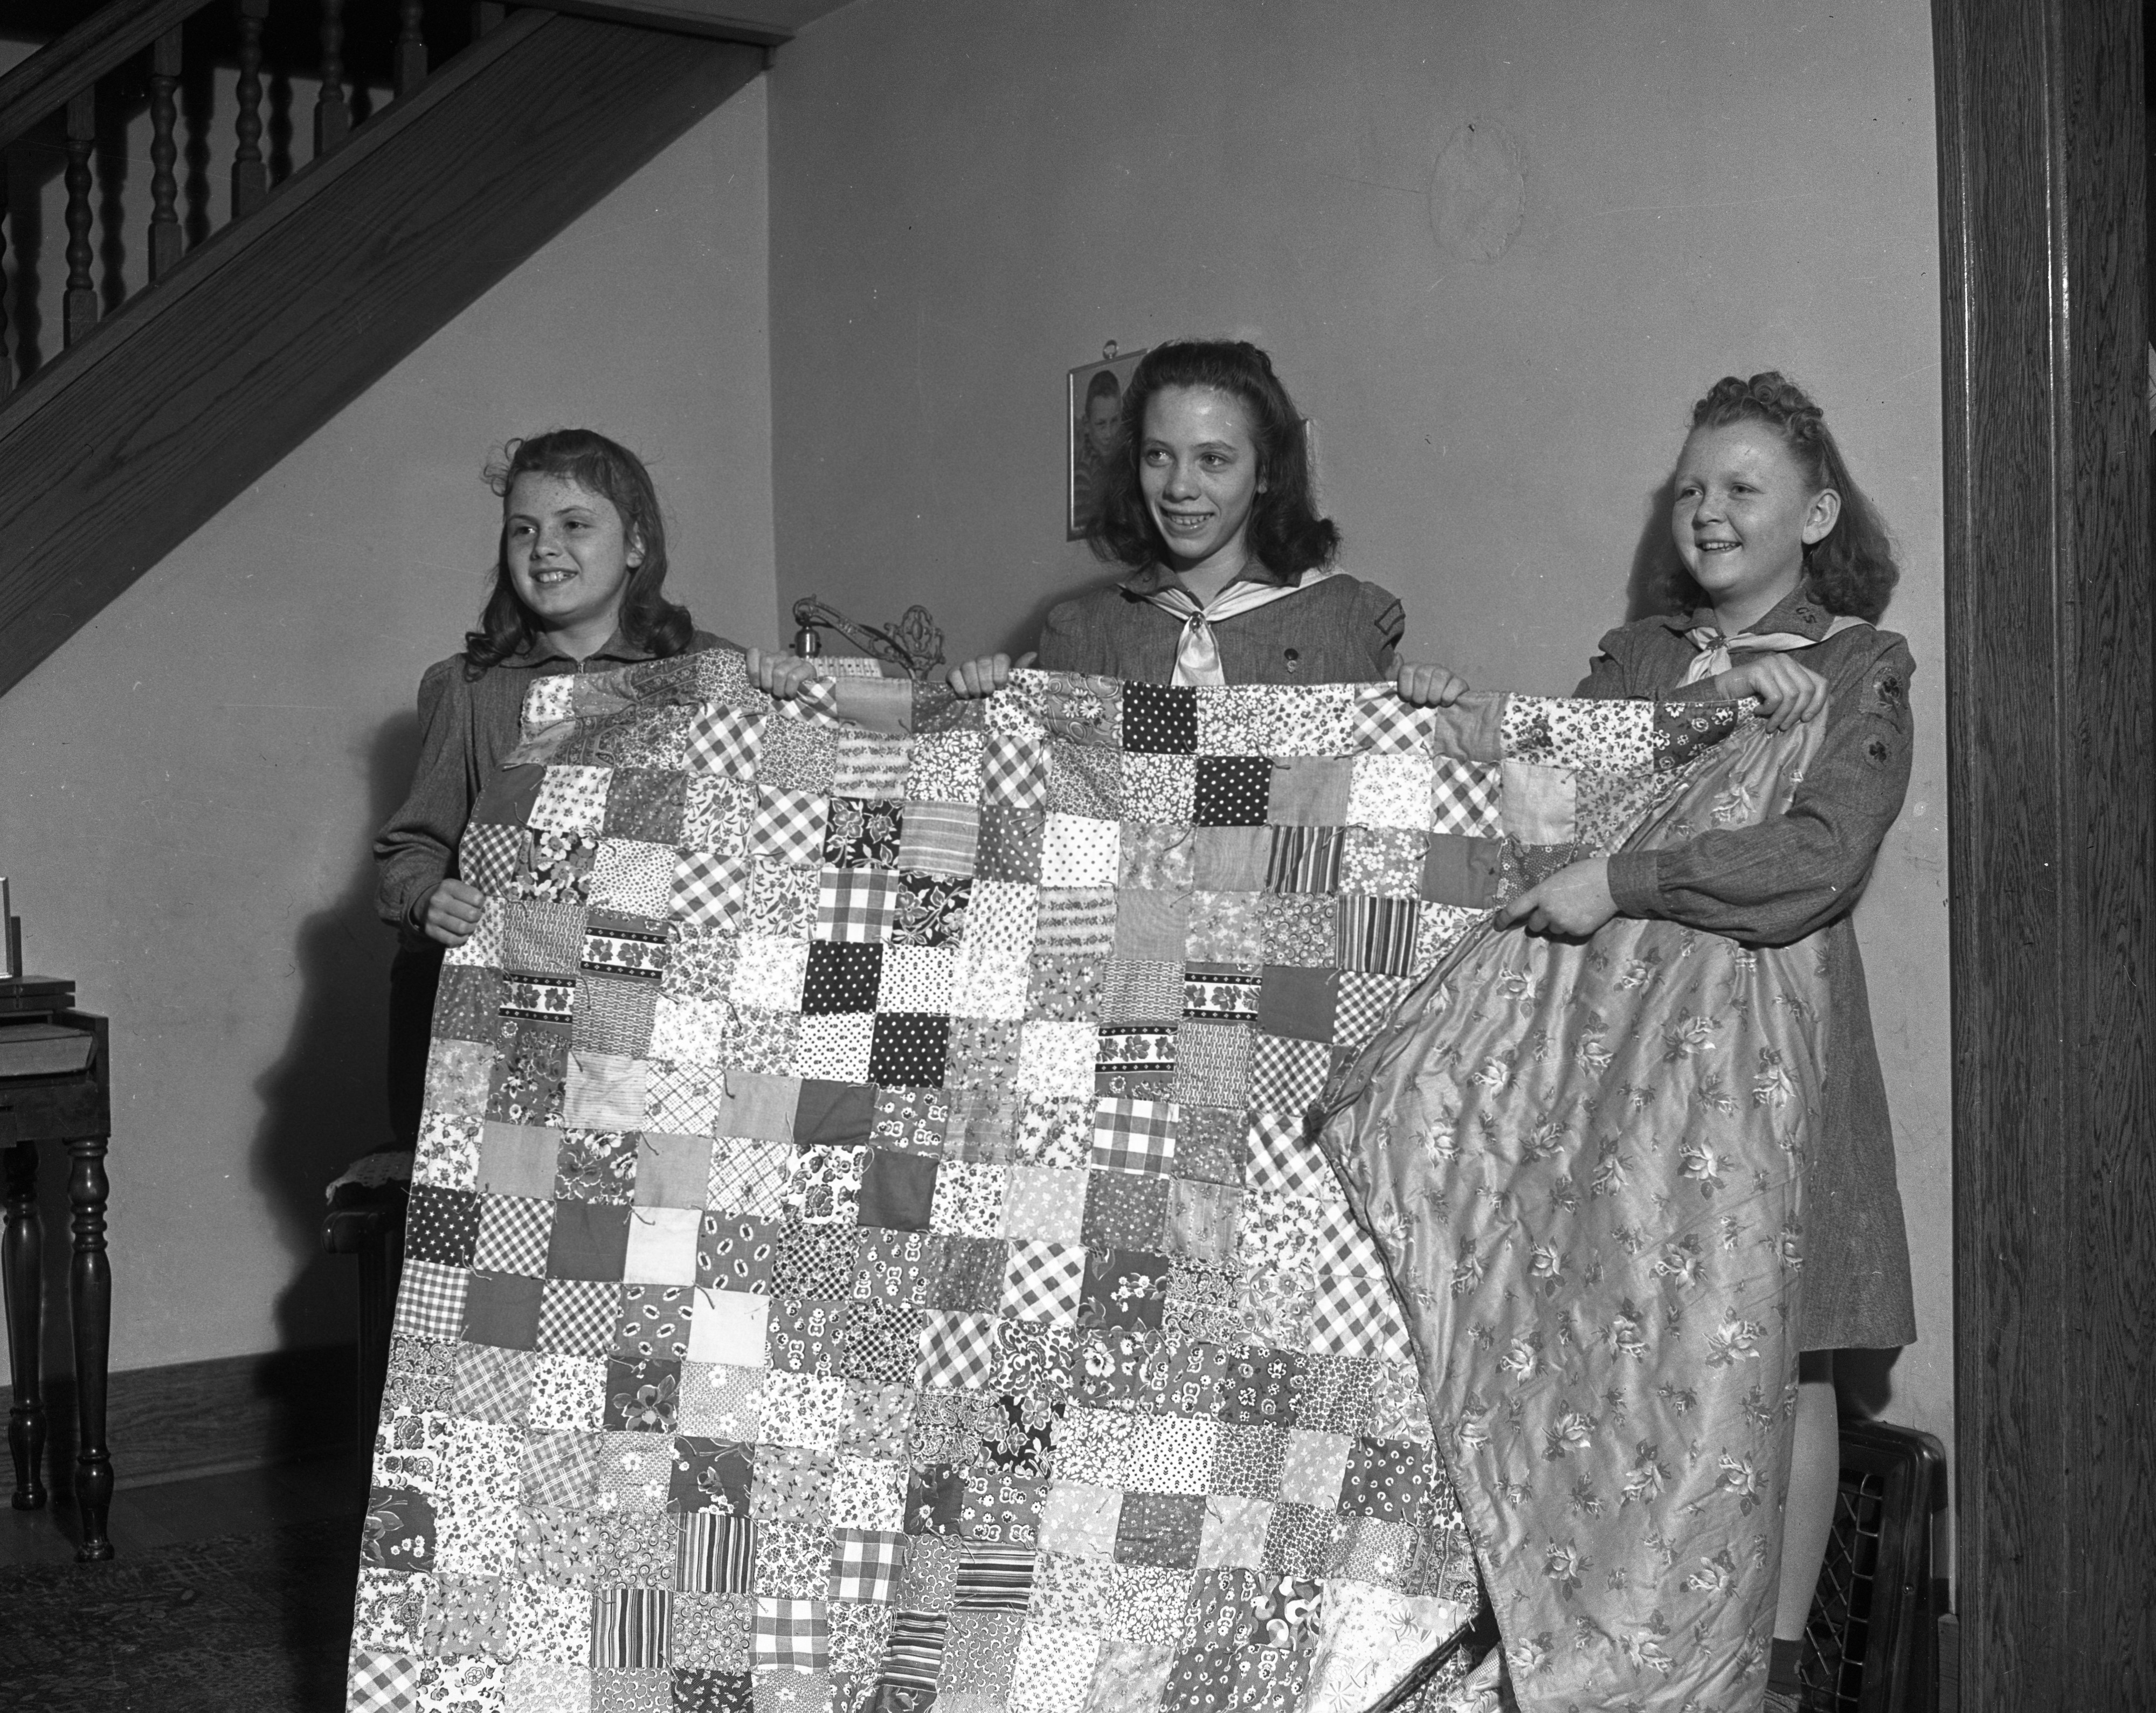 Girl Scouts make quilt, April 1942 image